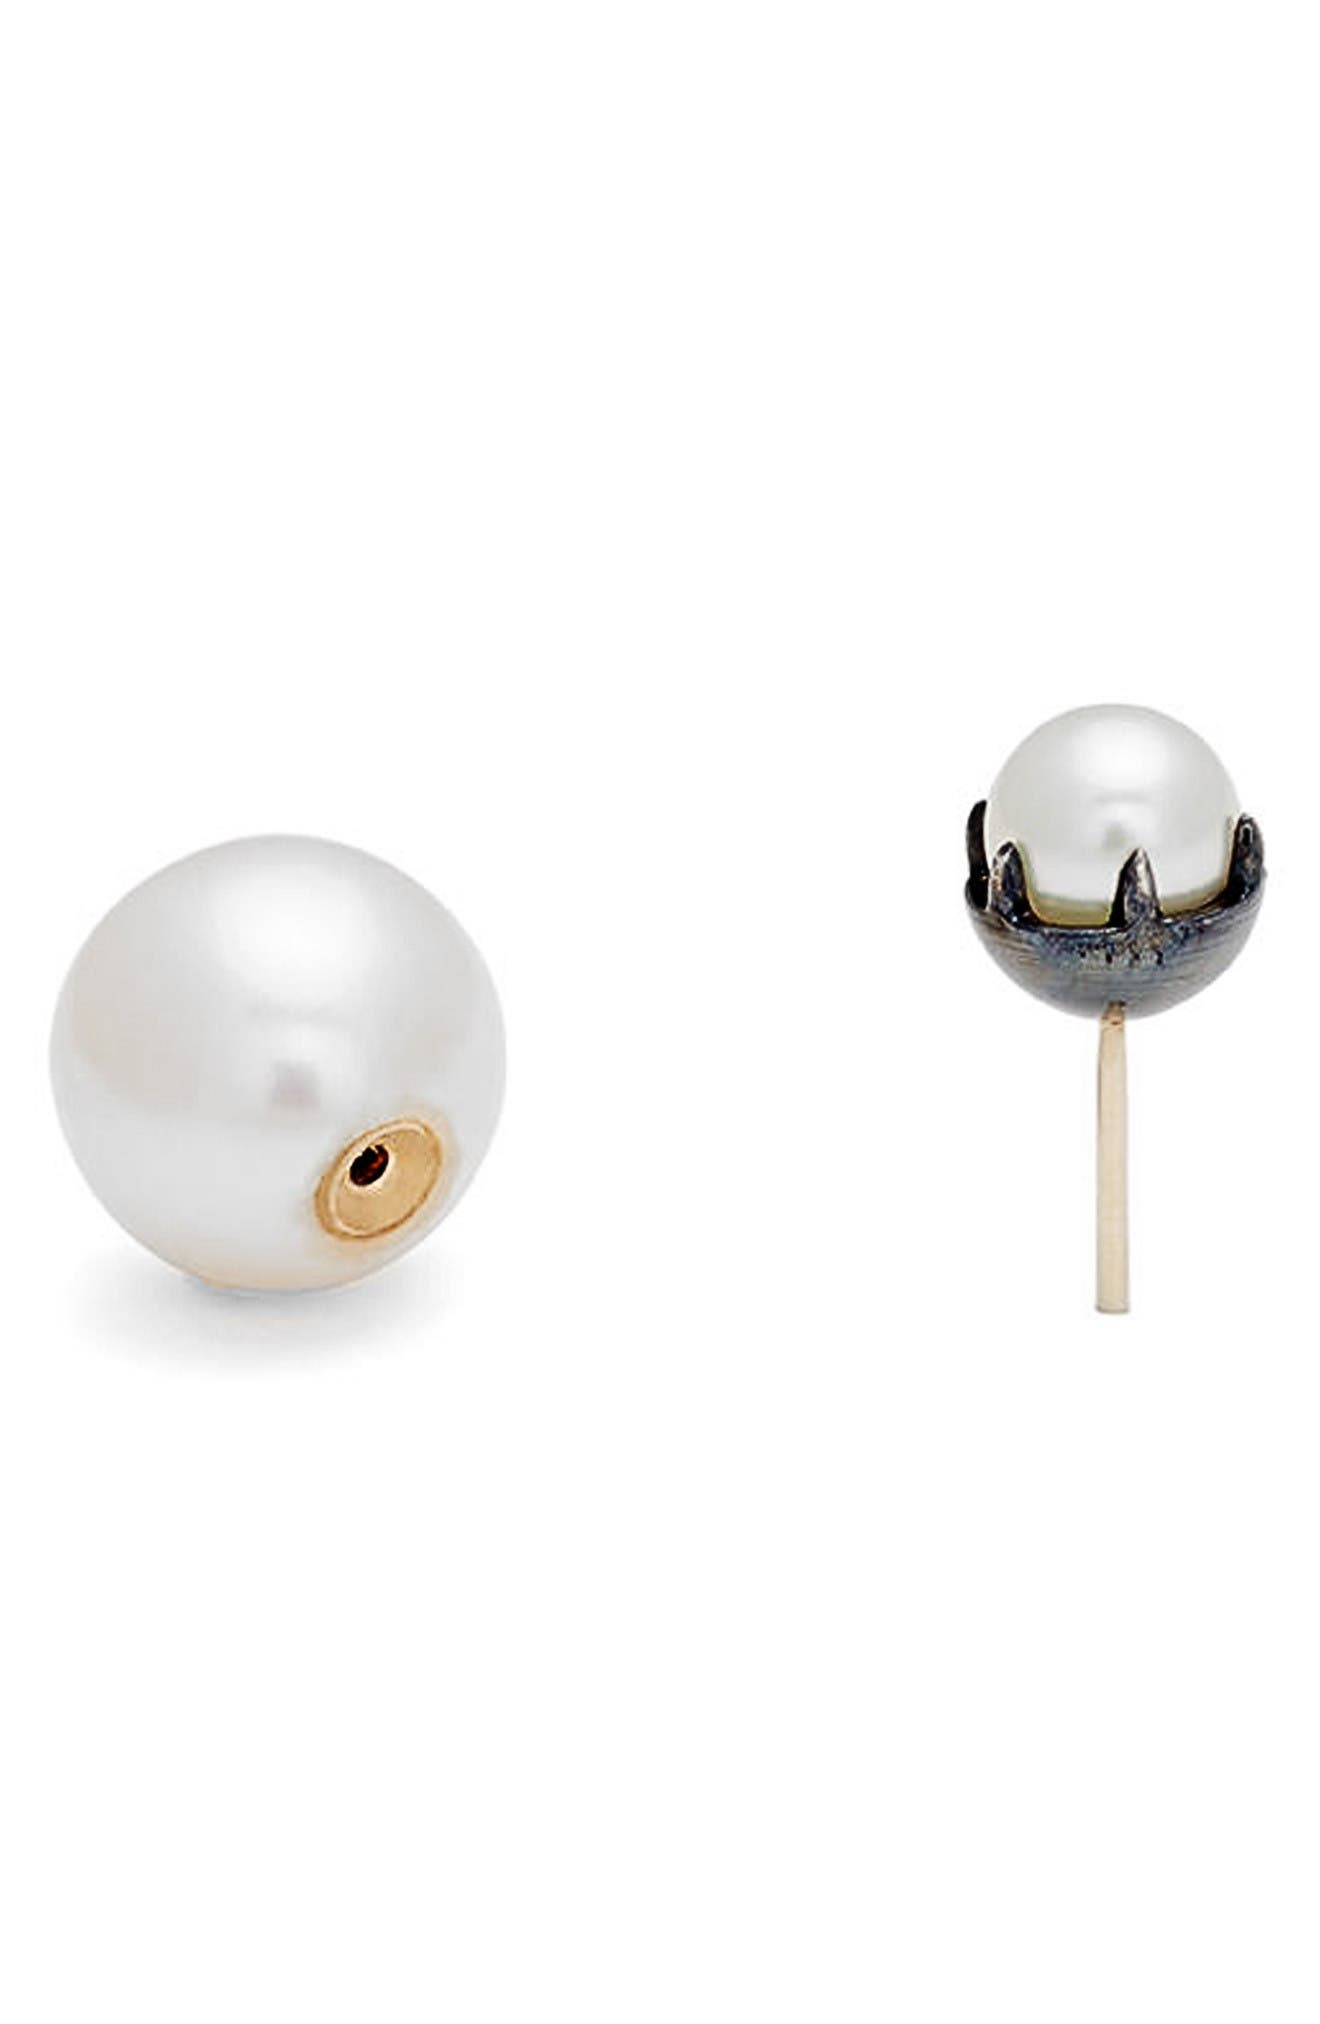 Akoya & Freshwater Pearl Double Stud Earrings,                             Alternate thumbnail 2, color,                             Gold Pearl